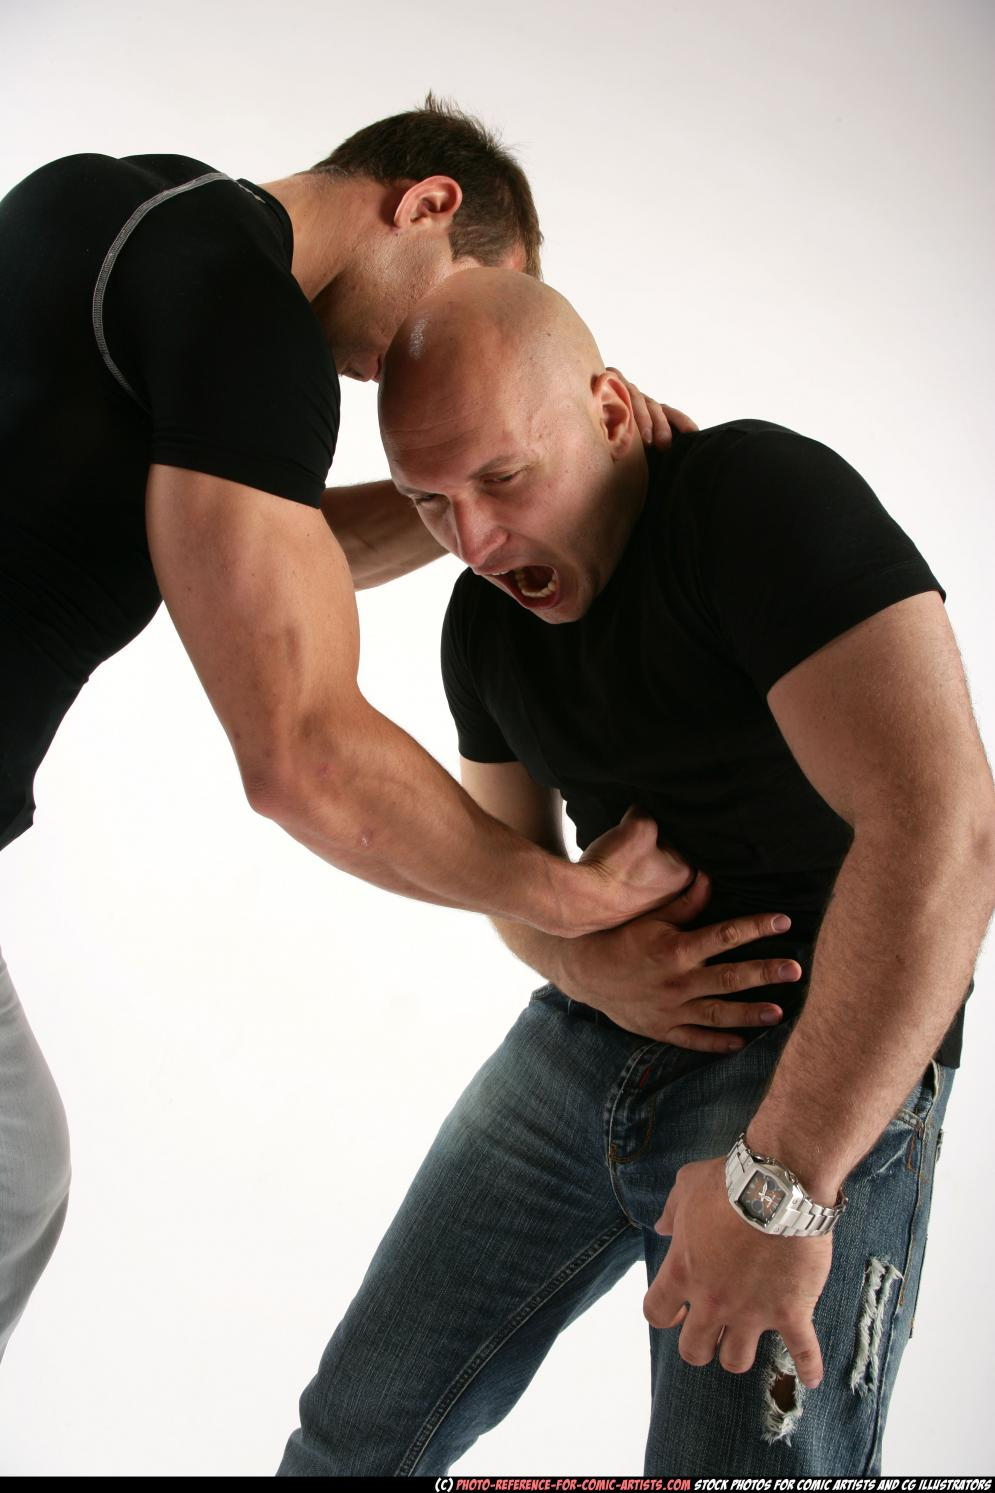 Image from Punch In The Stomach - 2456fight_stomach_punch_03.jpg